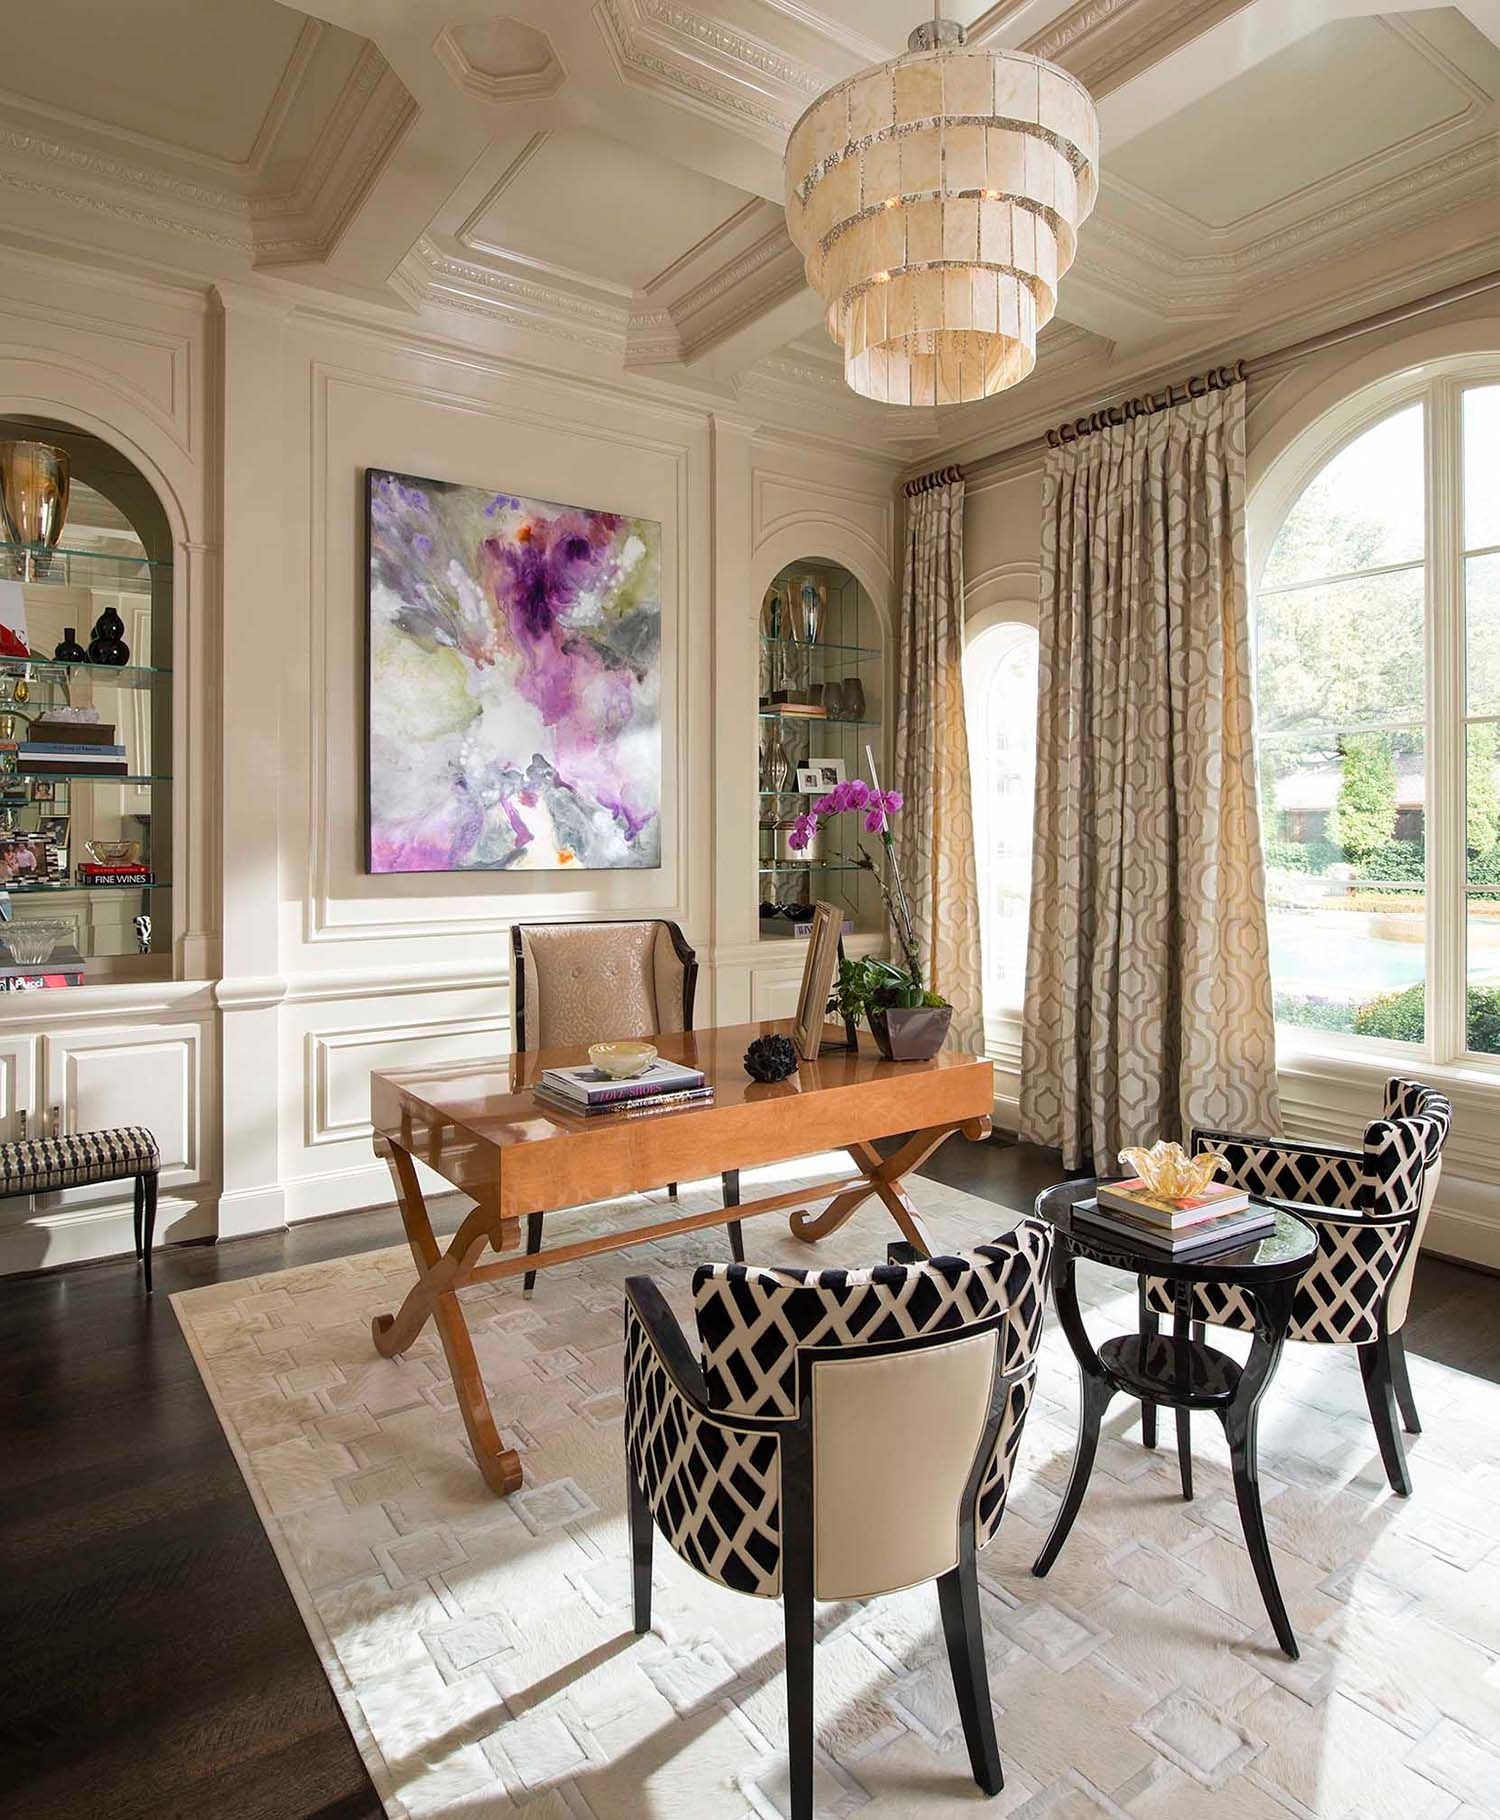 Dazzling Design Projects From Lighting Genius DelightFULL |  Http://www.delightfull.eu/usa/. Most Expensive Austin Homes, Dallas  Interiors And Unique ...